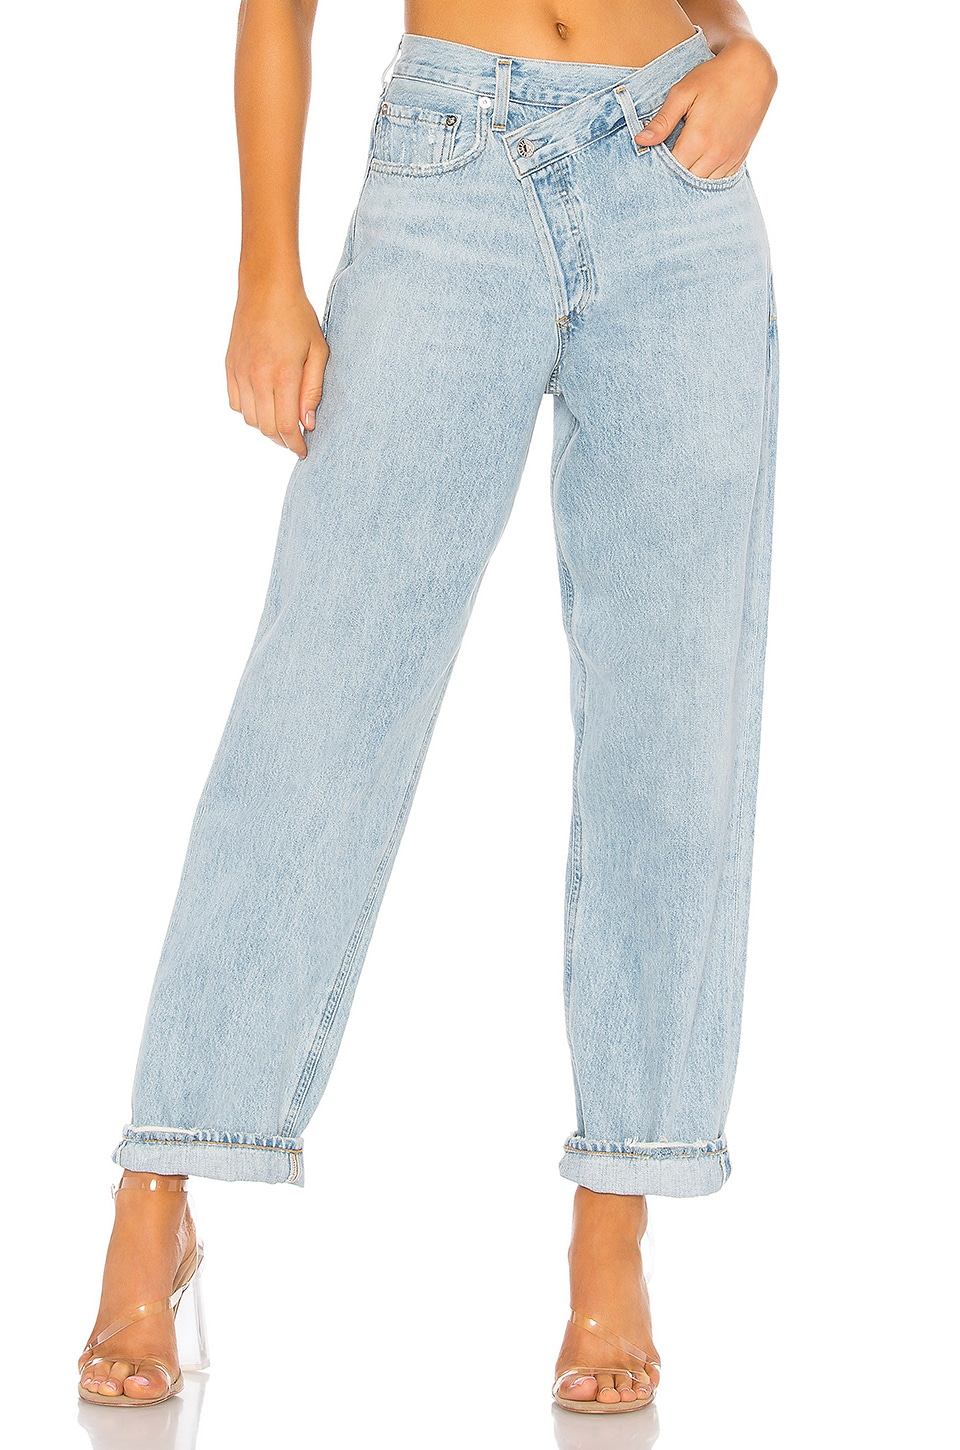 Criss Cross Upsized Jean             AGOLDE                                                                                                       CA$ 264.00 12